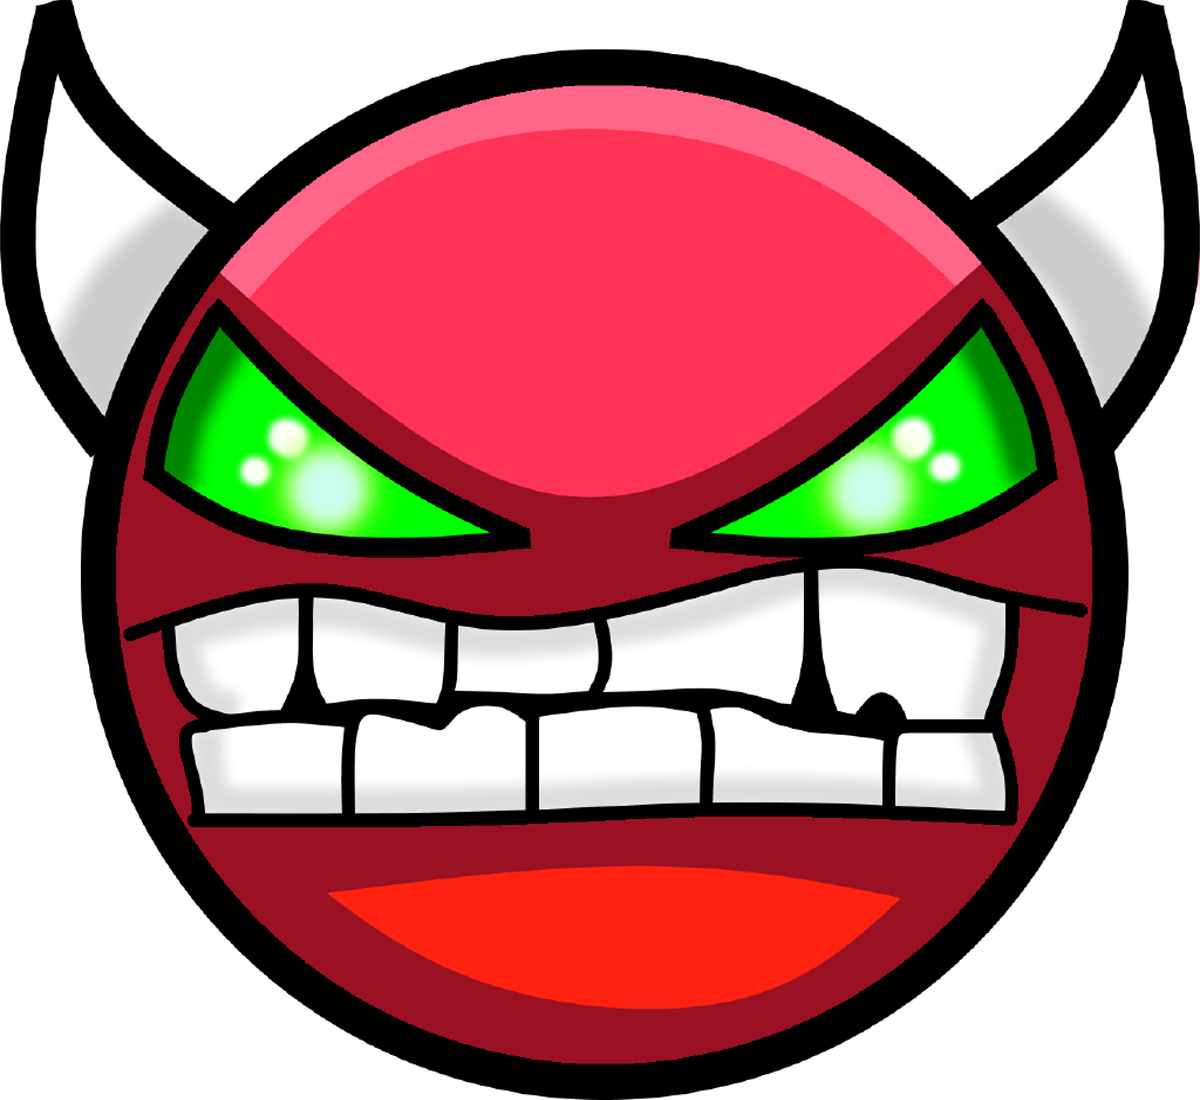 Demon download transparent png